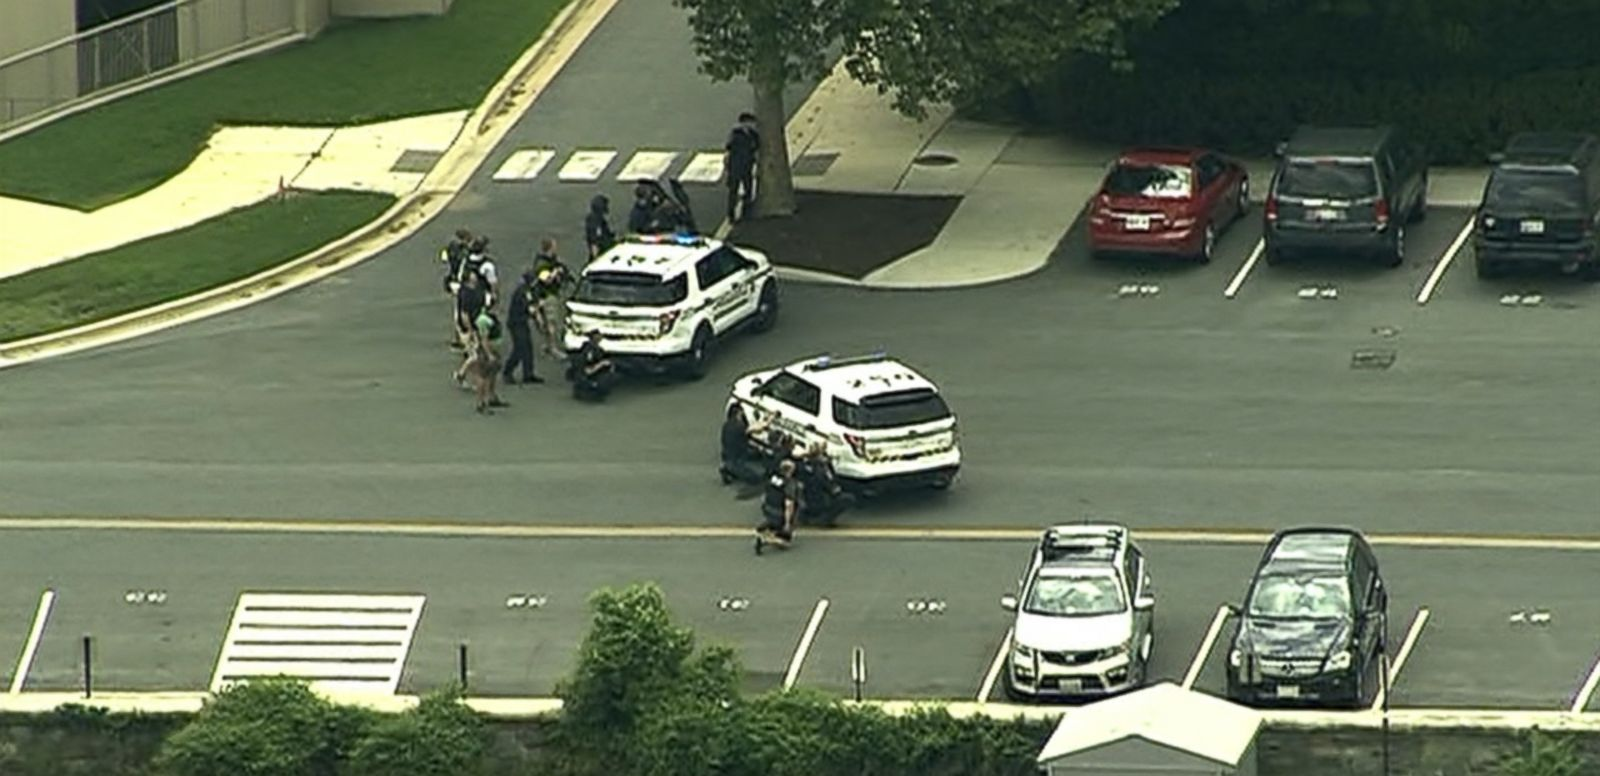 VIDEO: Authorities responded to a suspected 'active shooter' at the facility near Bethesda, Maryland after an unconfirmed report of a single gunshot.